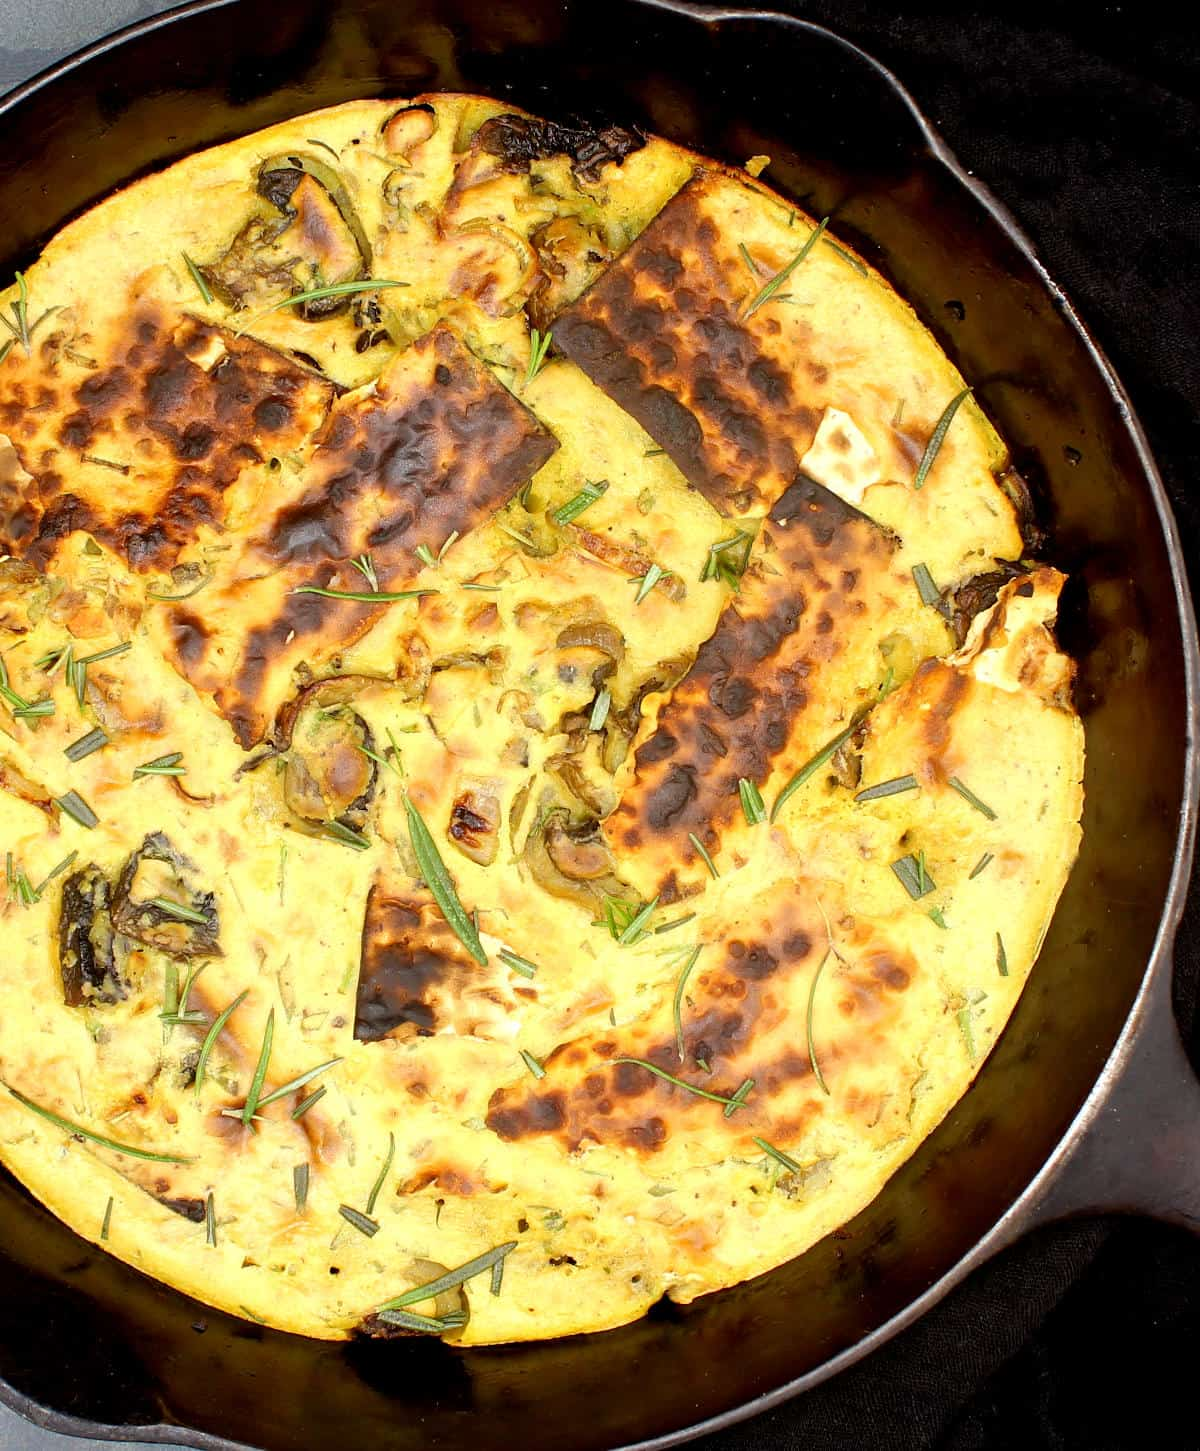 Photo of vegan matzo brei with chickpea eggs, mushrooms and shards of matzo crackers in a cast iron skillet.